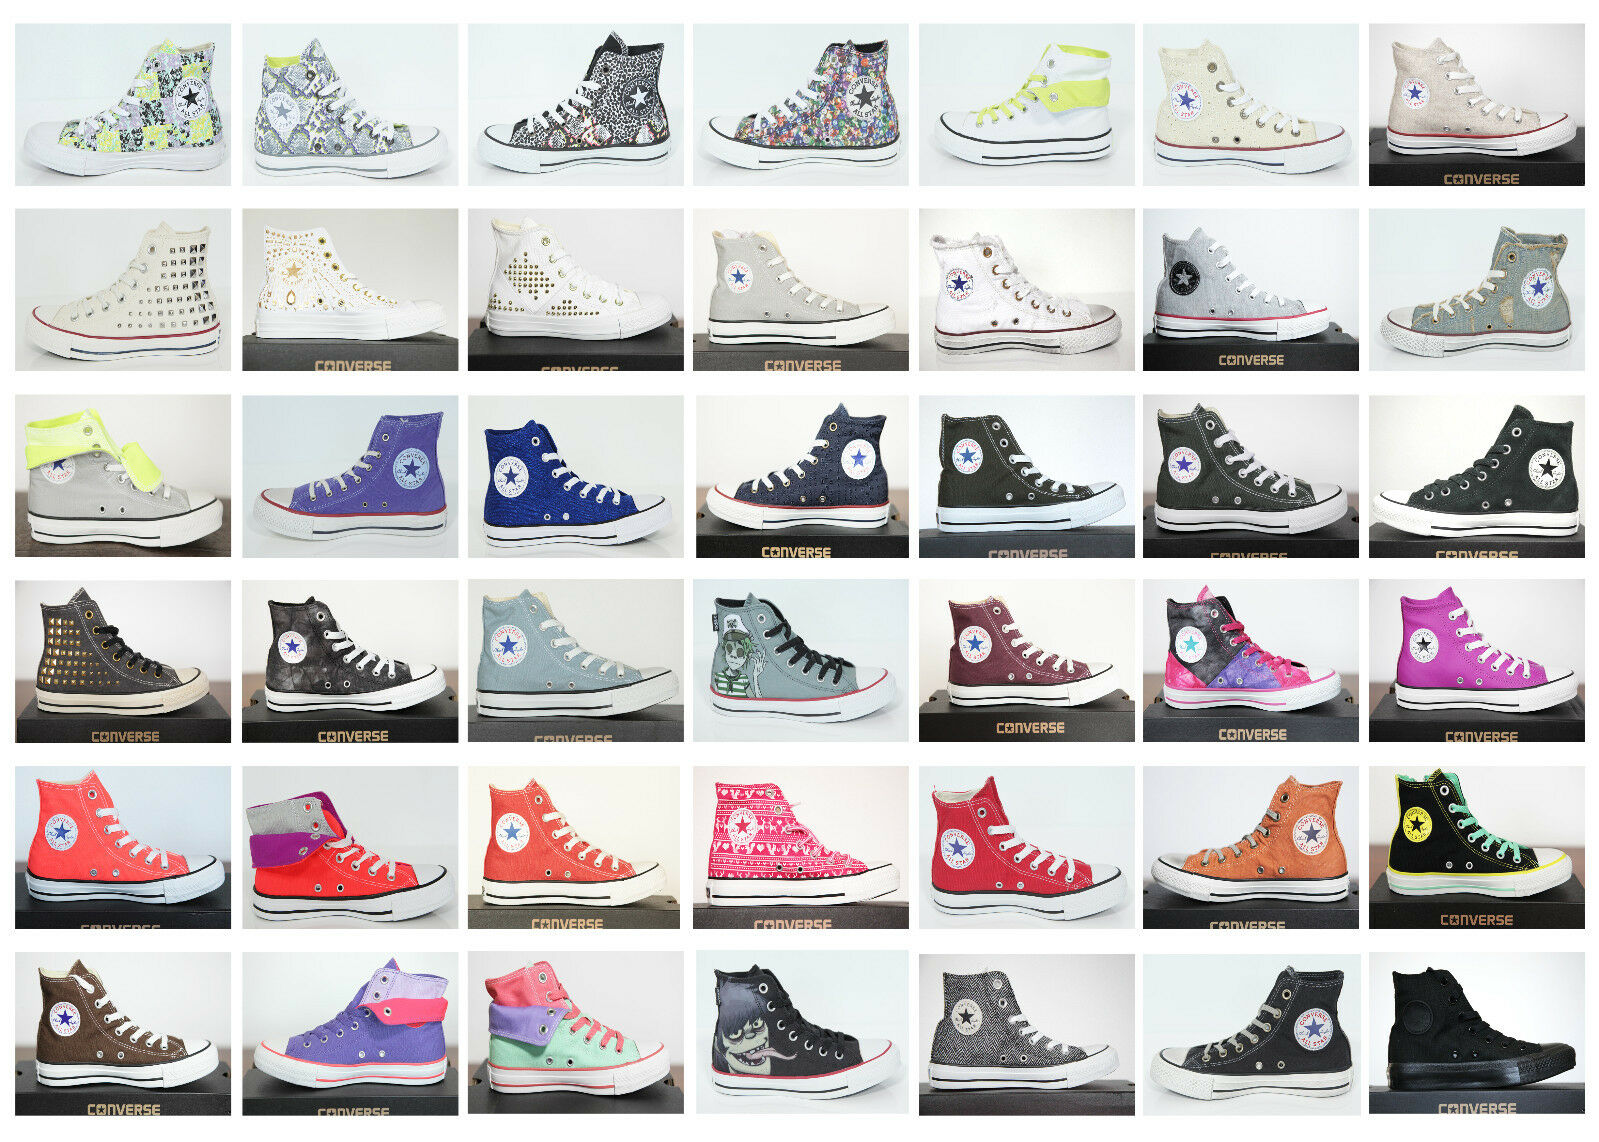 low priced 96c9f 52034 neu-all-star-converse-chucks-hi-leinen-leder-damen-sneaker.jpg